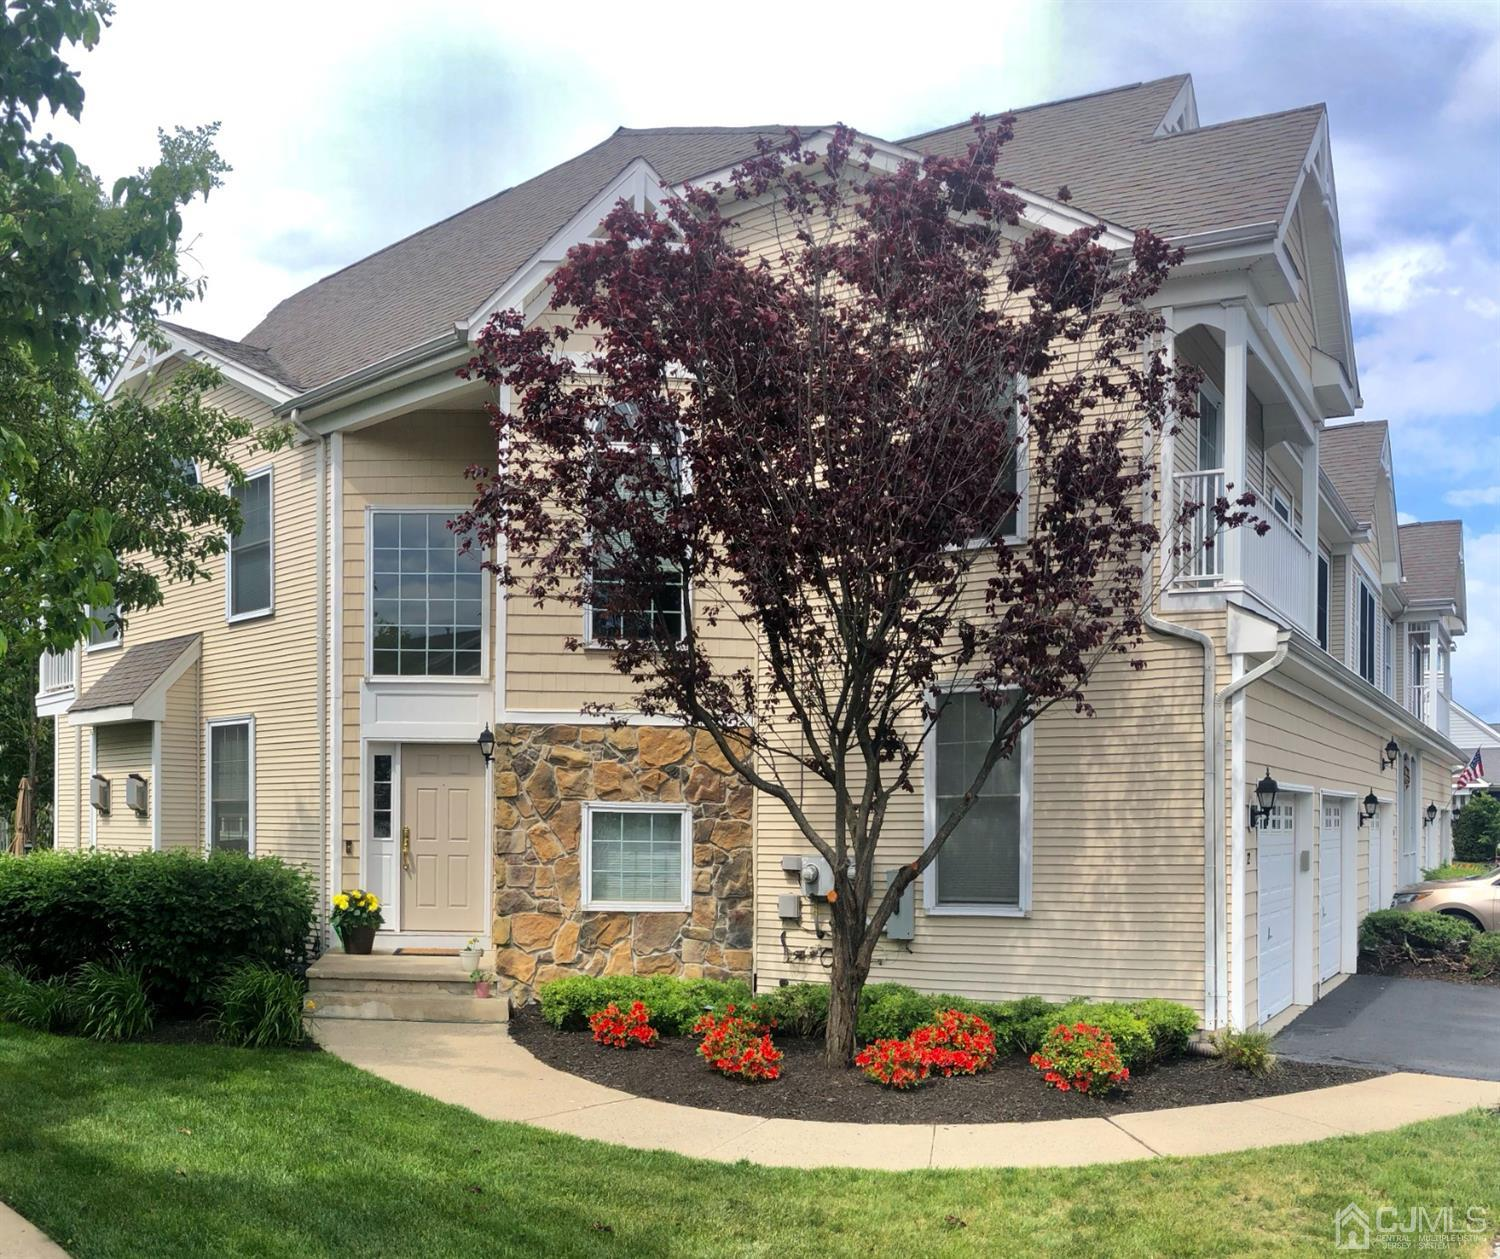 Property for sale at 22 S Shore Drive, South Amboy,  New Jersey 08879